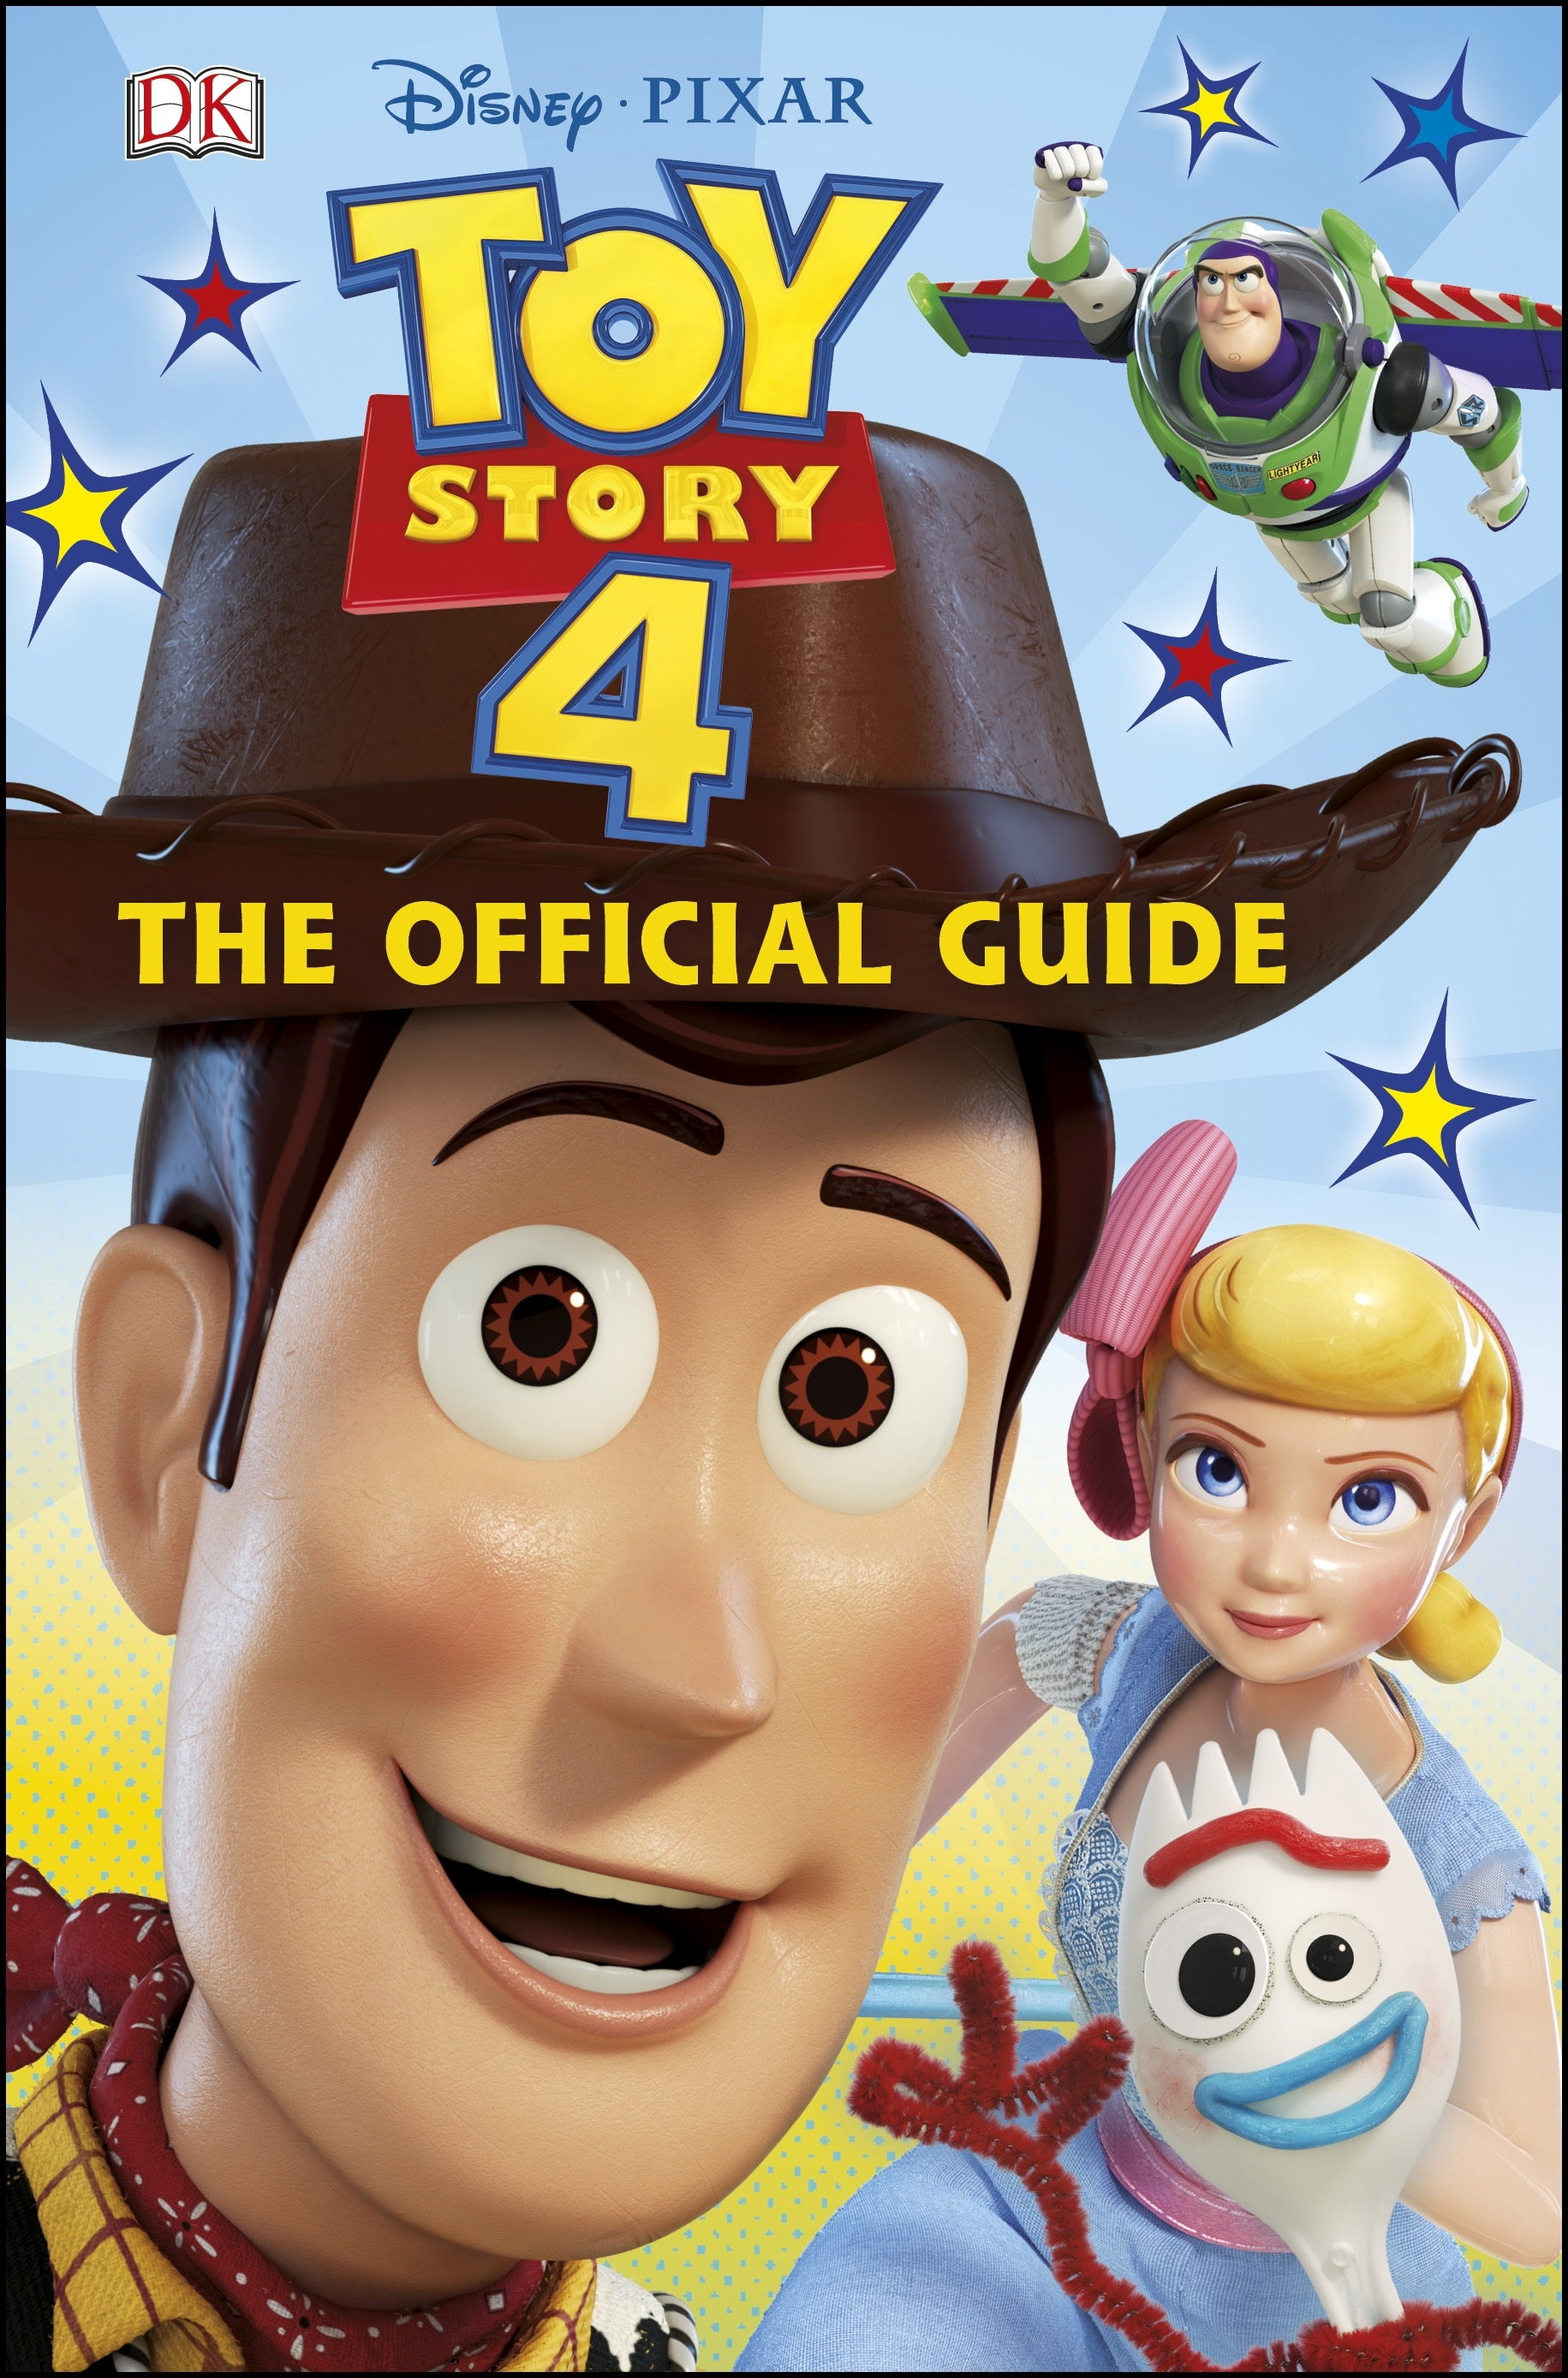 Pixar Toy Story 4: Disney Pixar Toy Story 4 The Official Guide By DK